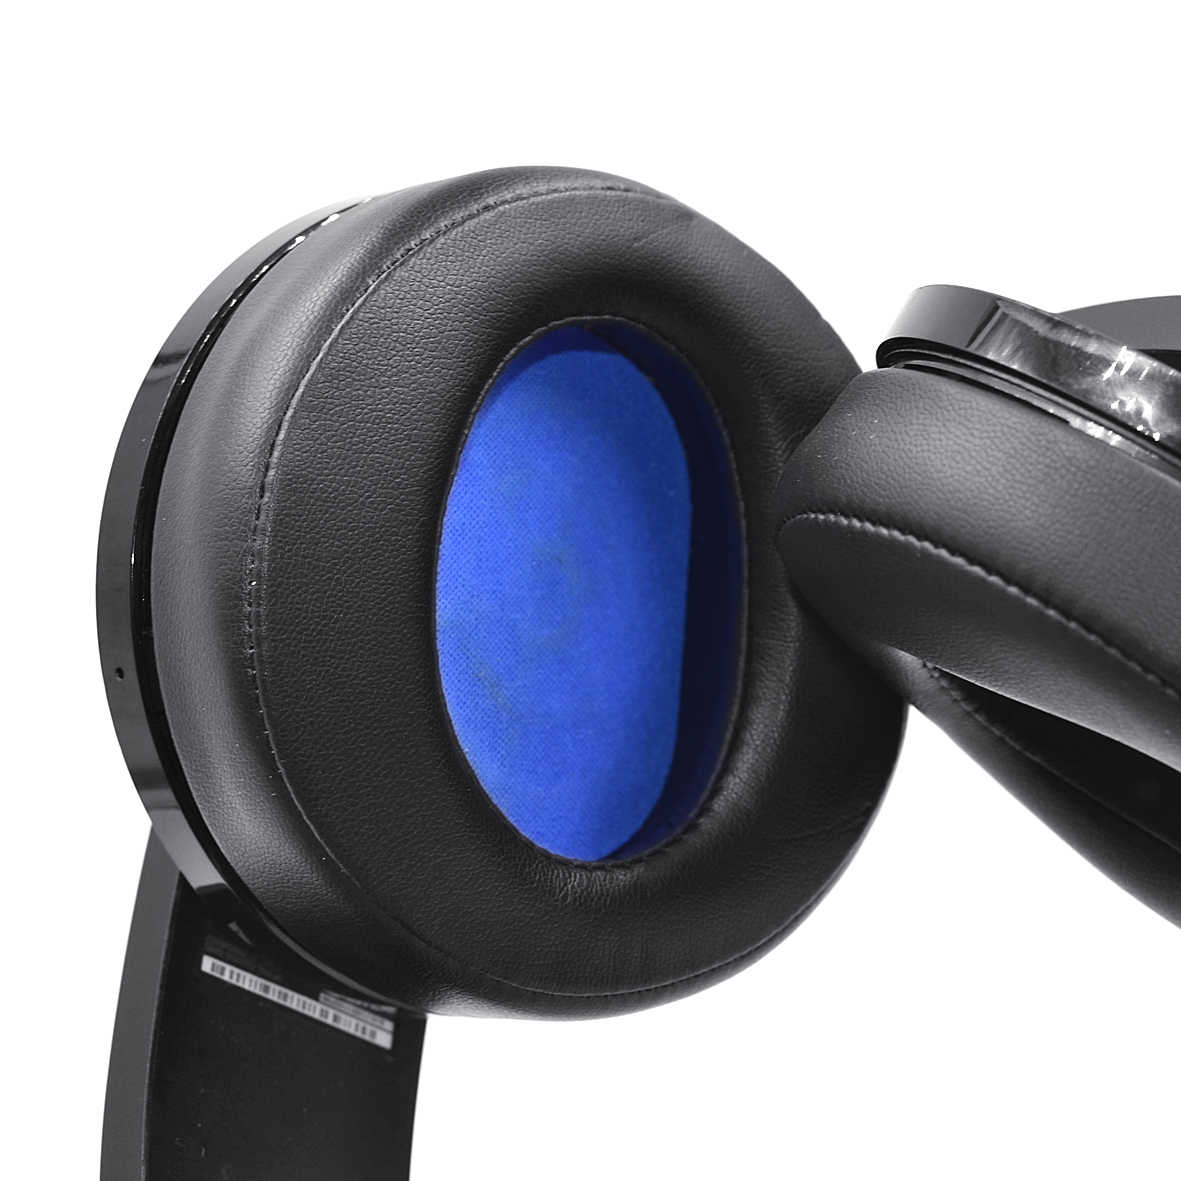 Defean Replacement Ear Pads For Sony Playstation Platinum Wireless Playstation 4 Headset Cechya 0090 Headphone Aliexpress